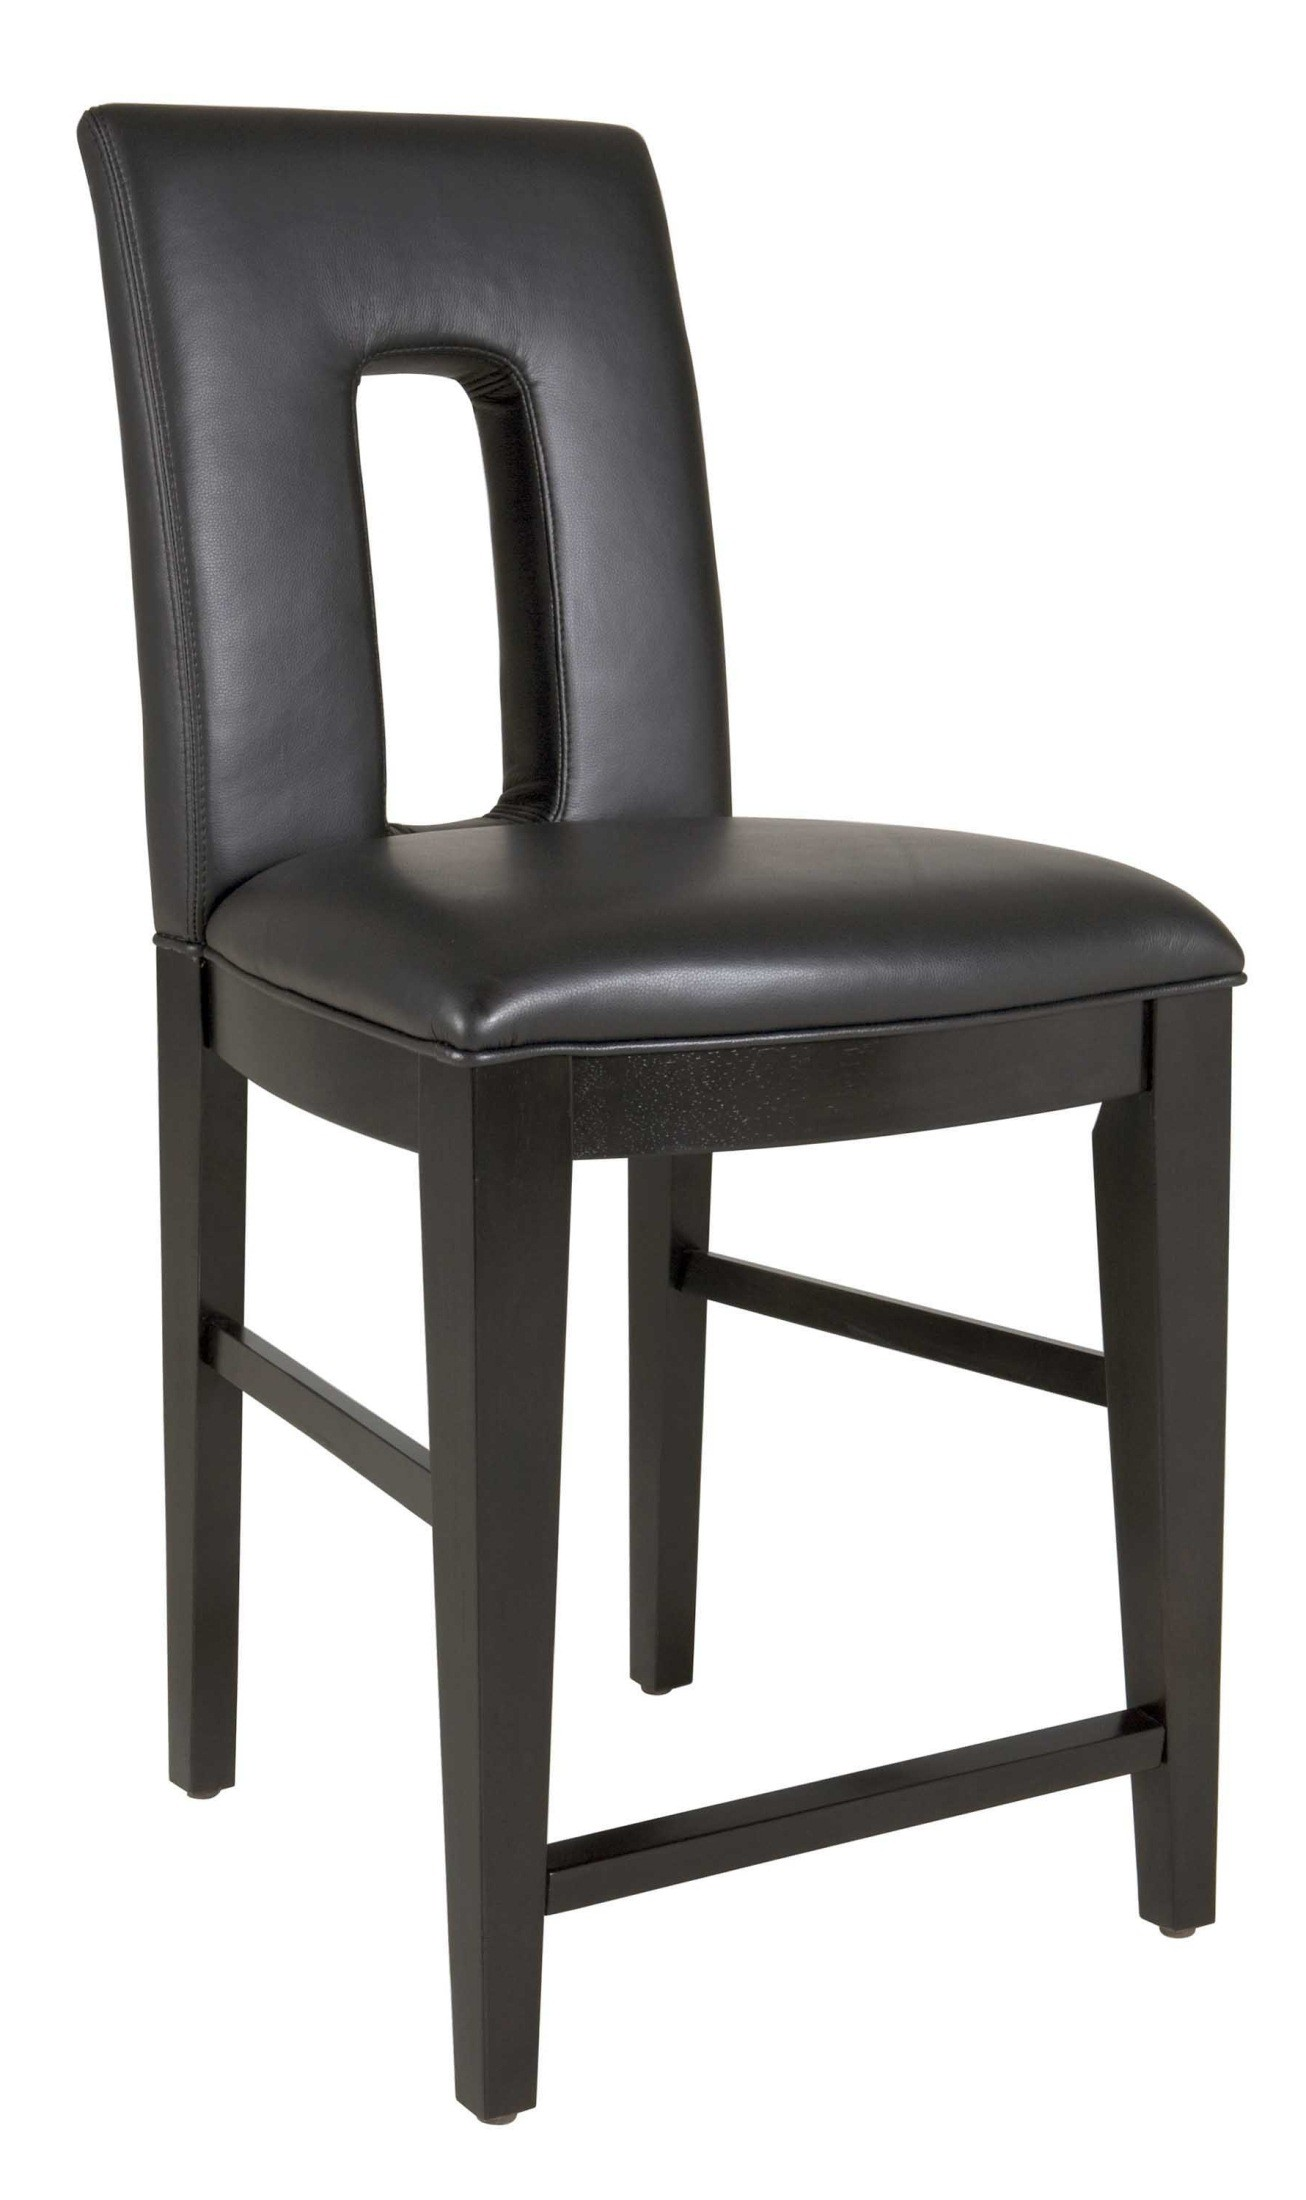 Perspectives Leather Upholstered Counter Stool 4444 592